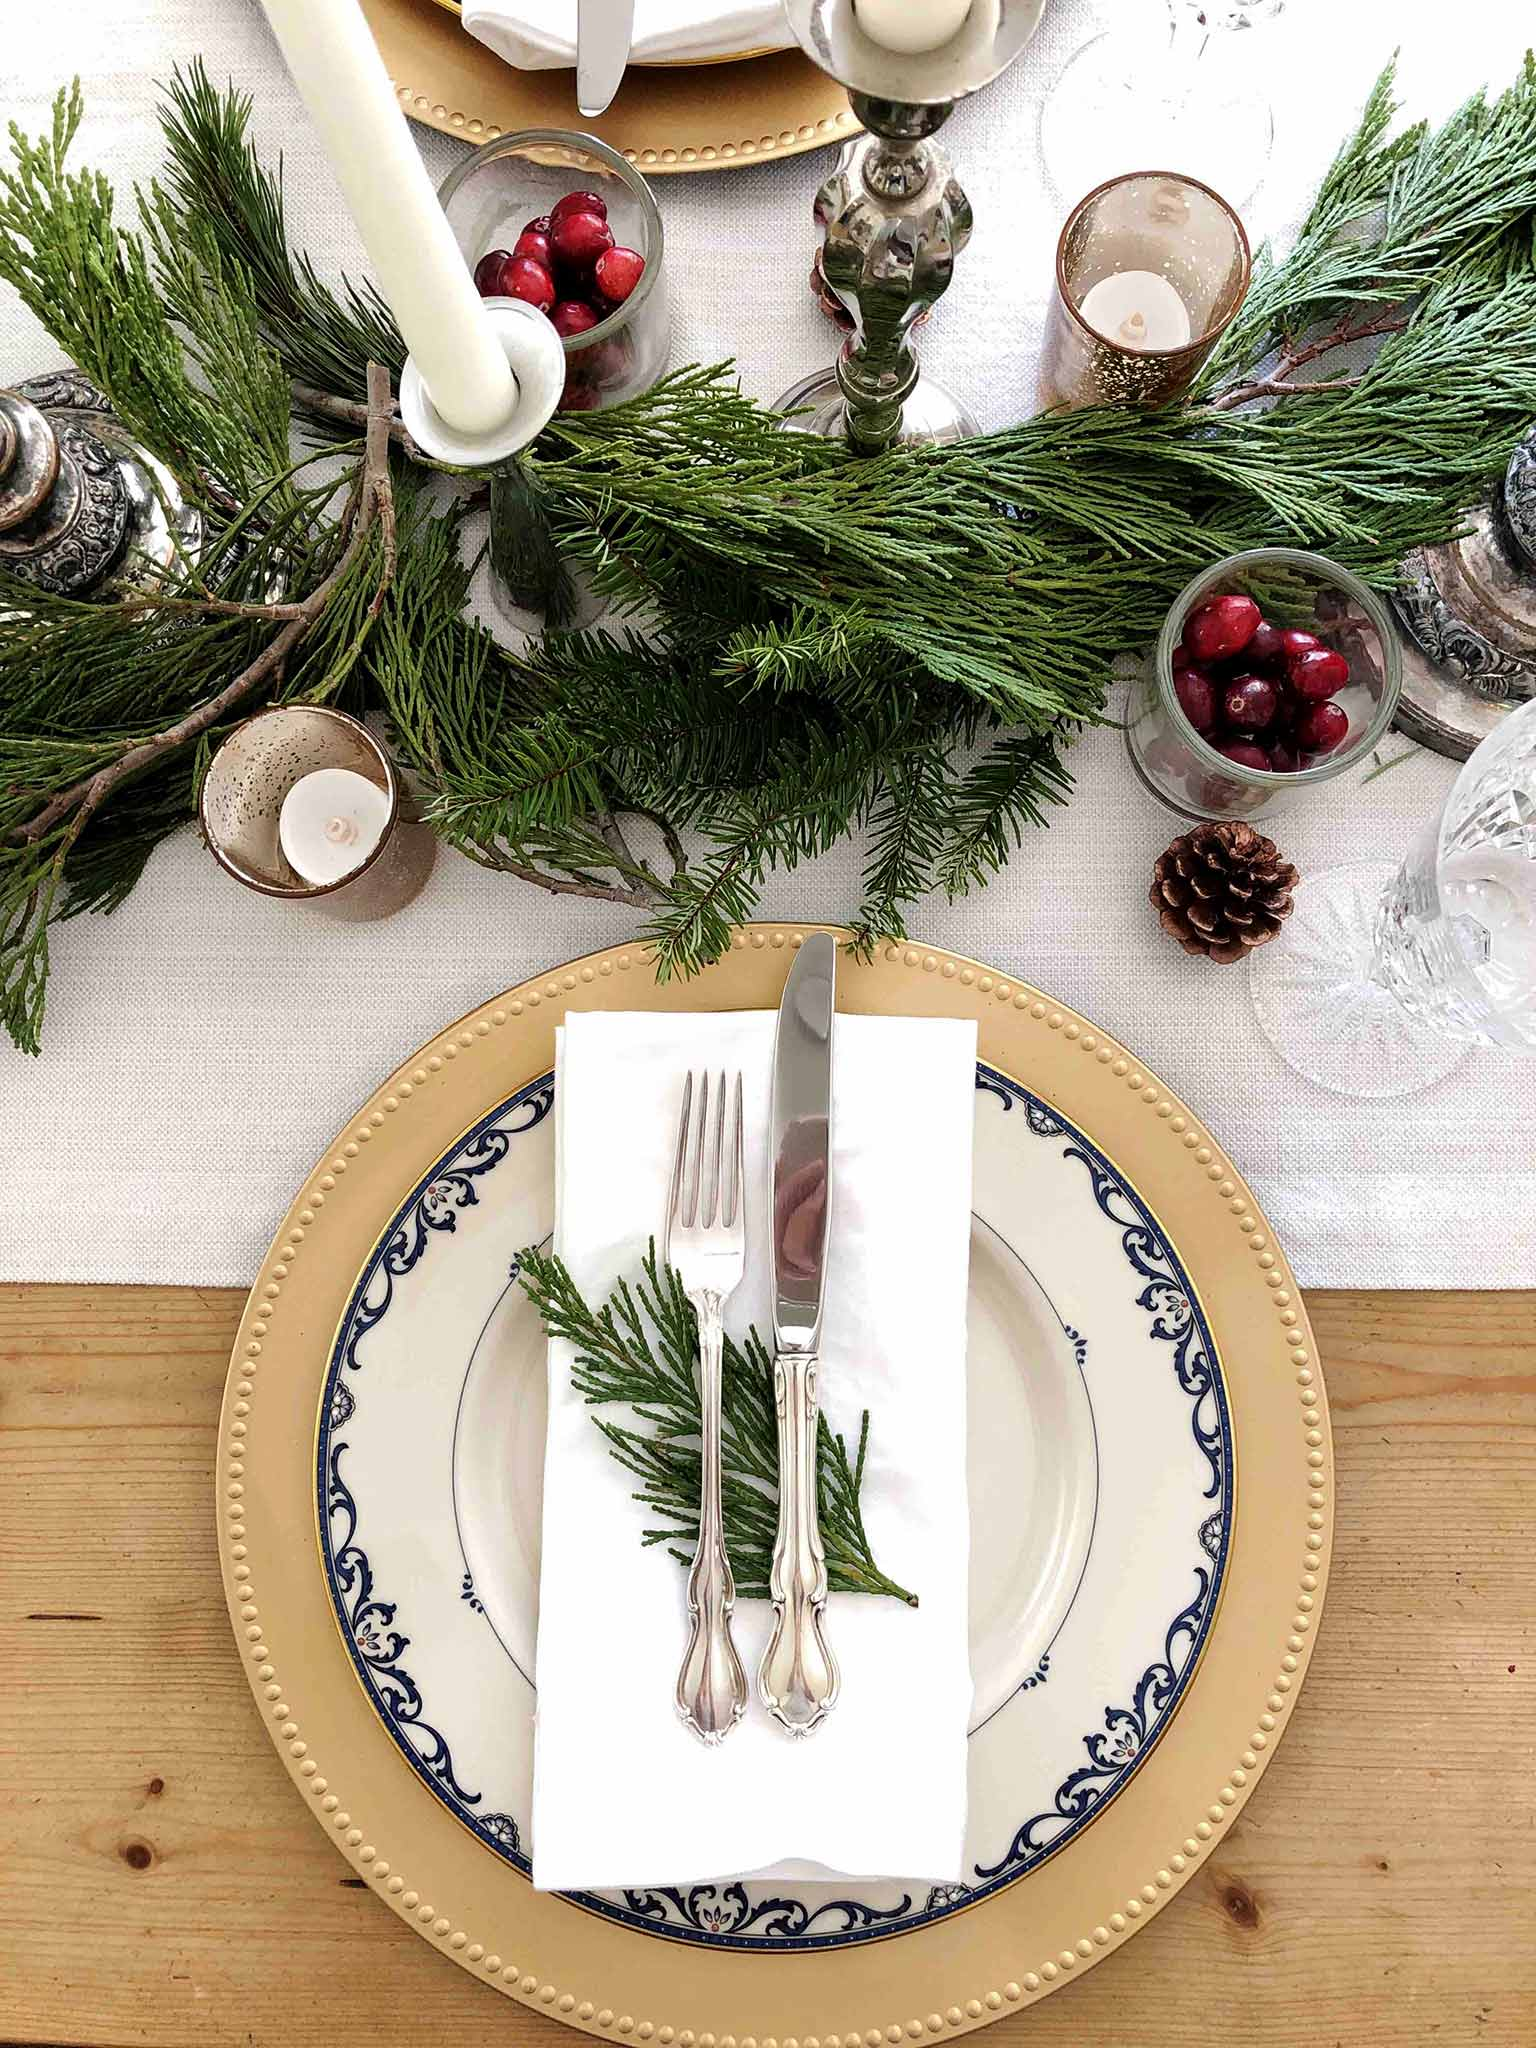 Vintage silverware | How to Create a Beautiful Tablescape on a Budget | That Homebird Life Blog #christmasdecor #tablescape